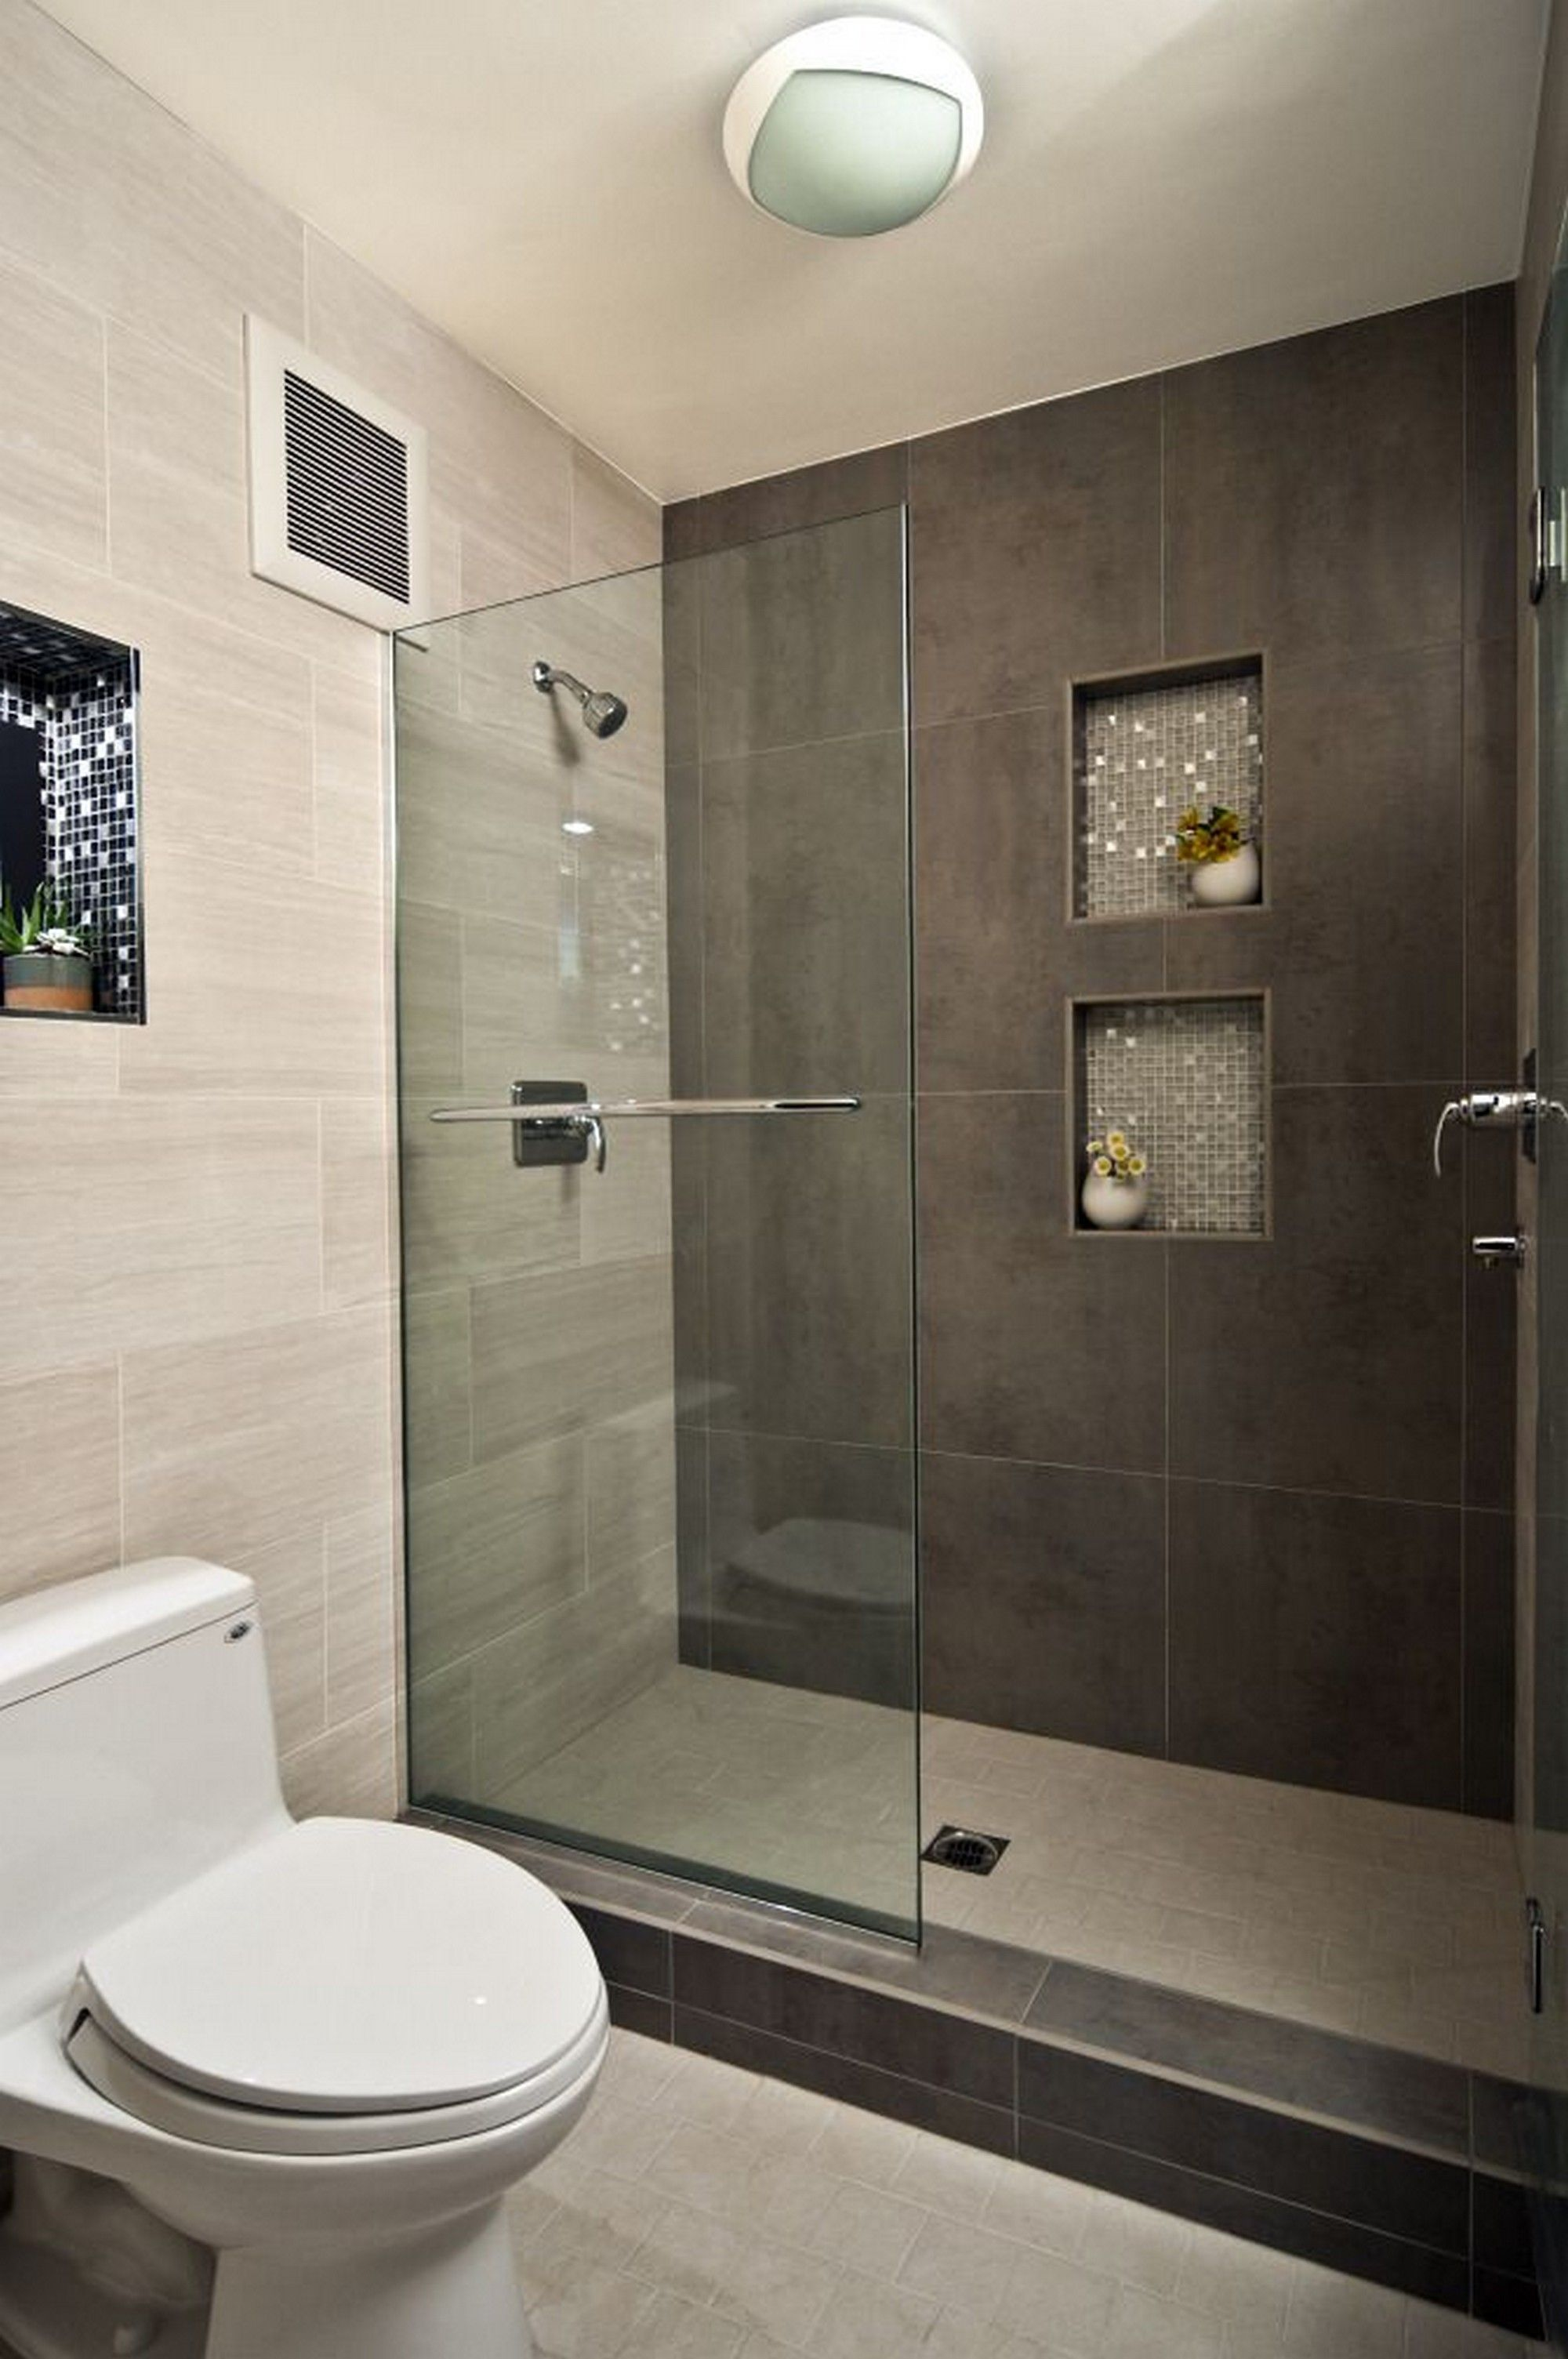 Small Bathroom Ideas With Shower Modern Bathroom Design Ideas With Walk In Shower  Small Bathroom .